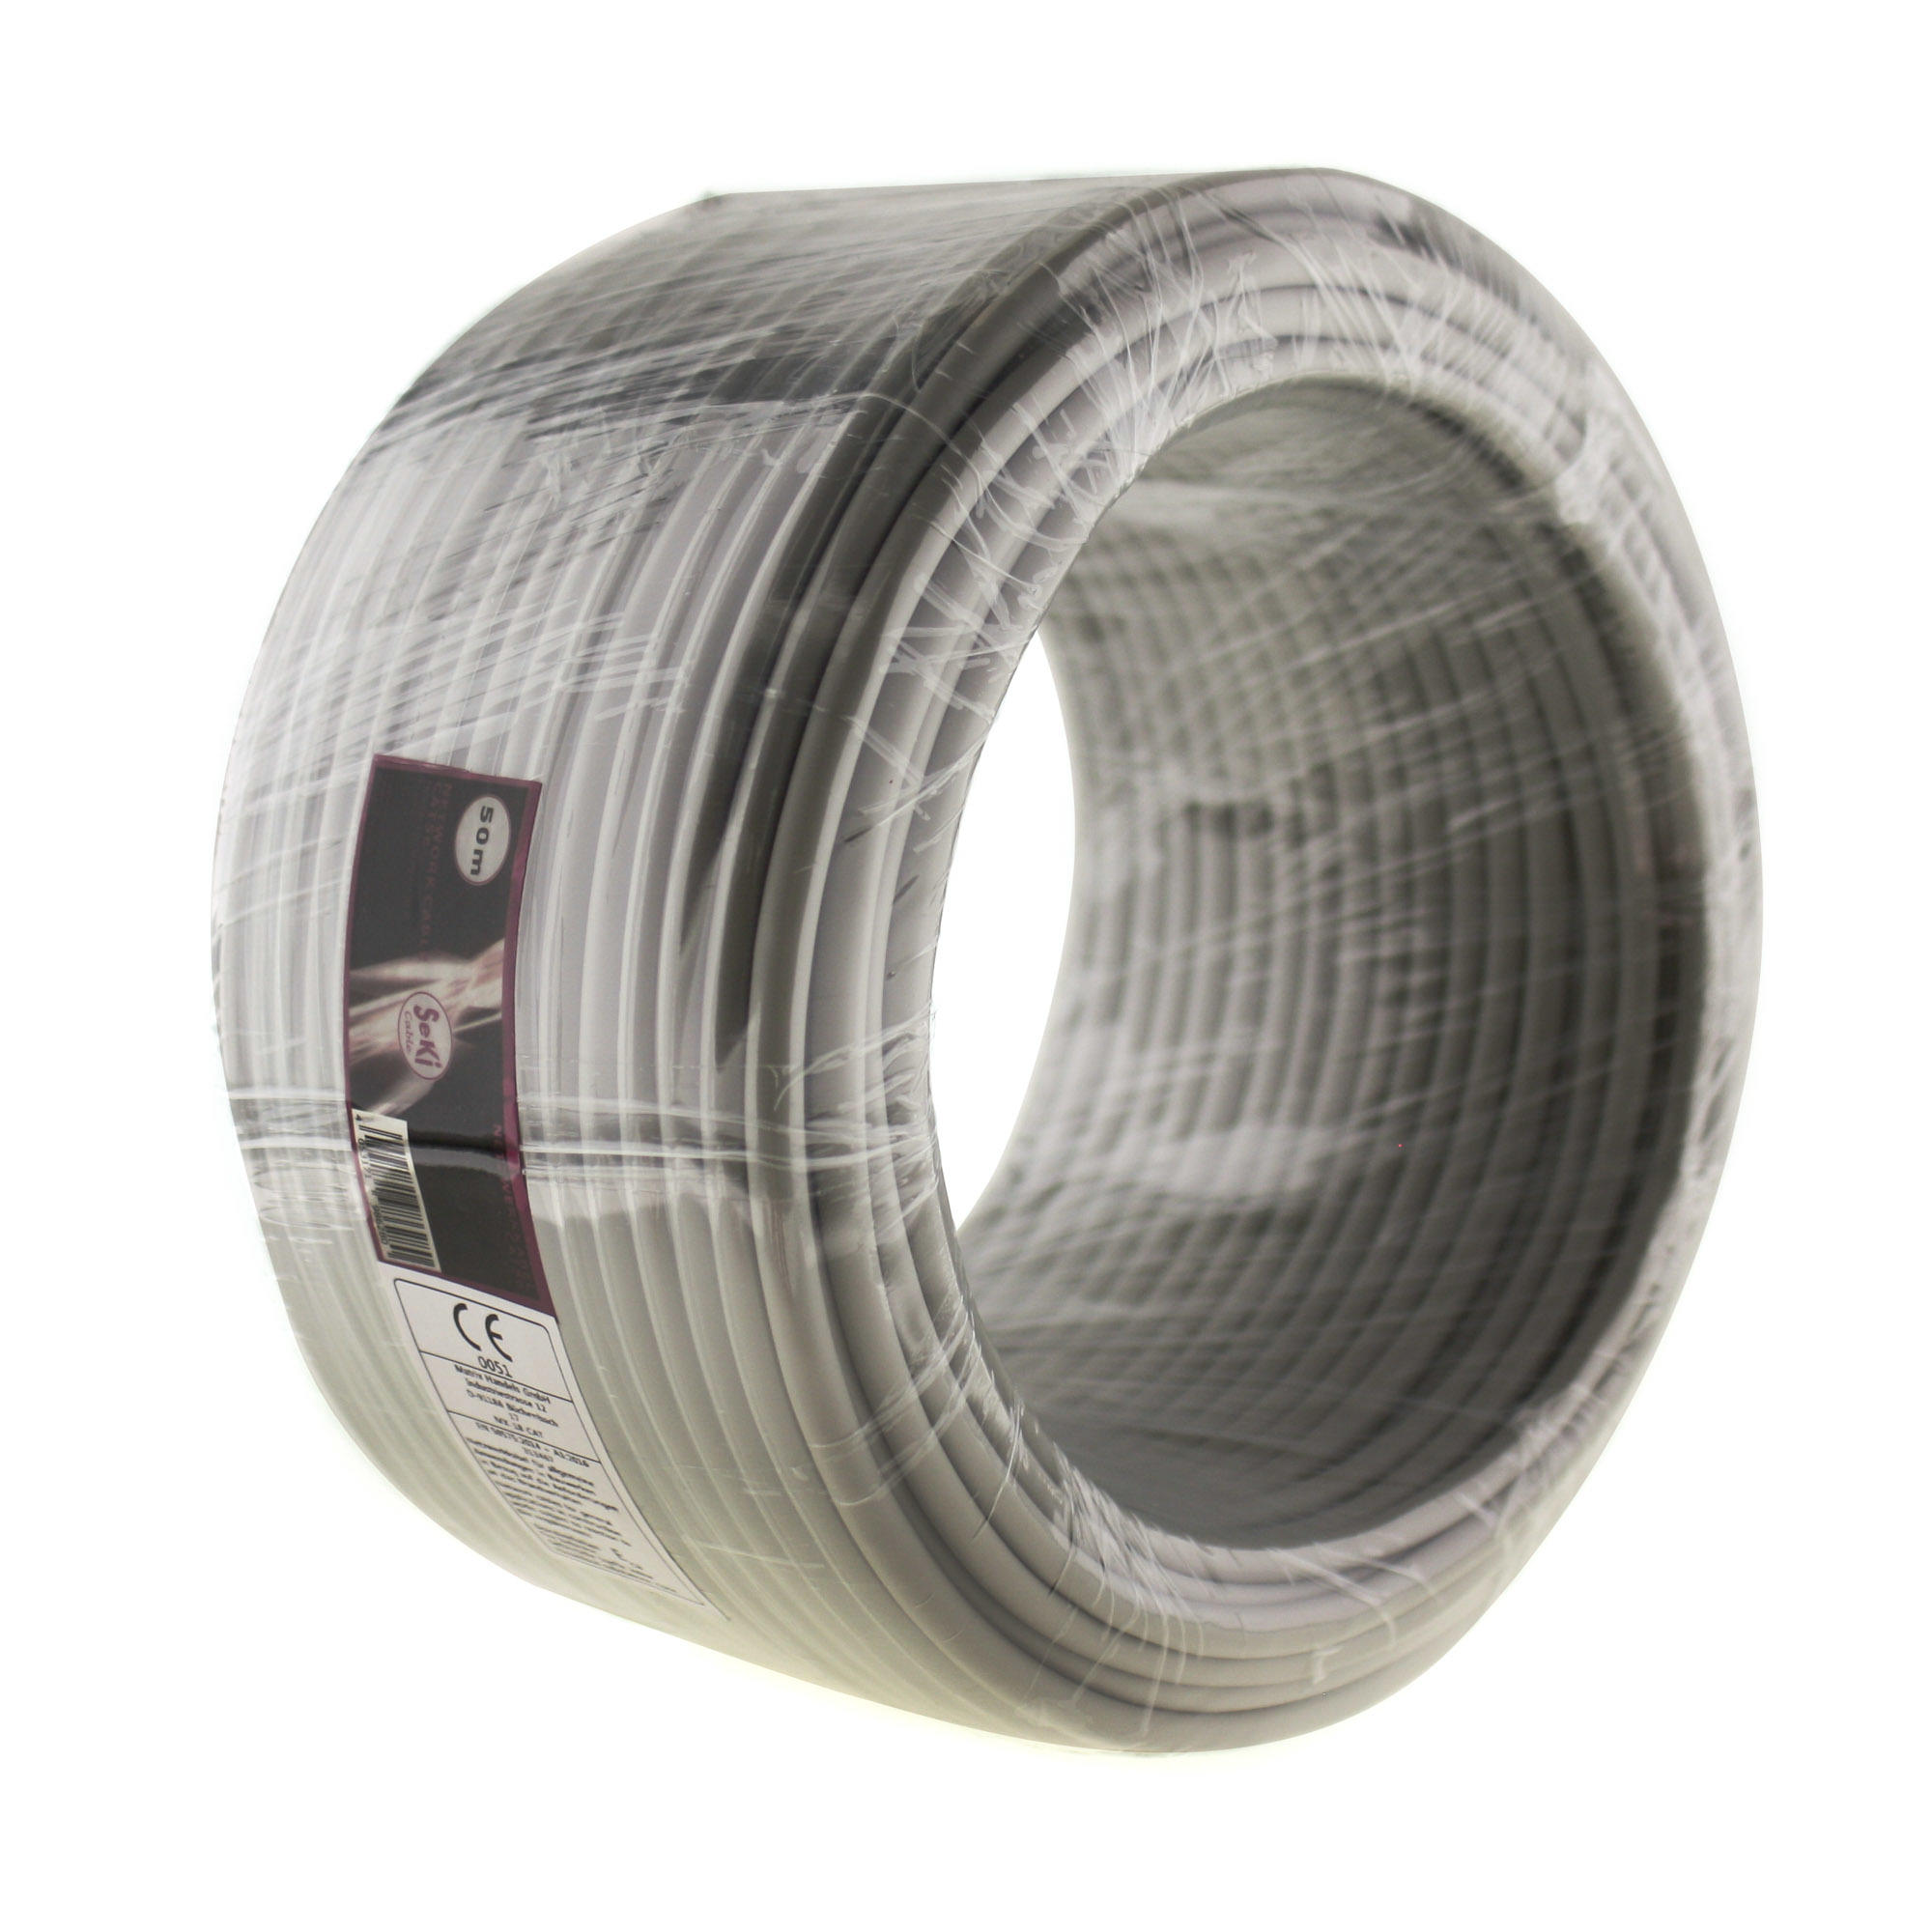 Network cable for installation Cat. 5e, 50m